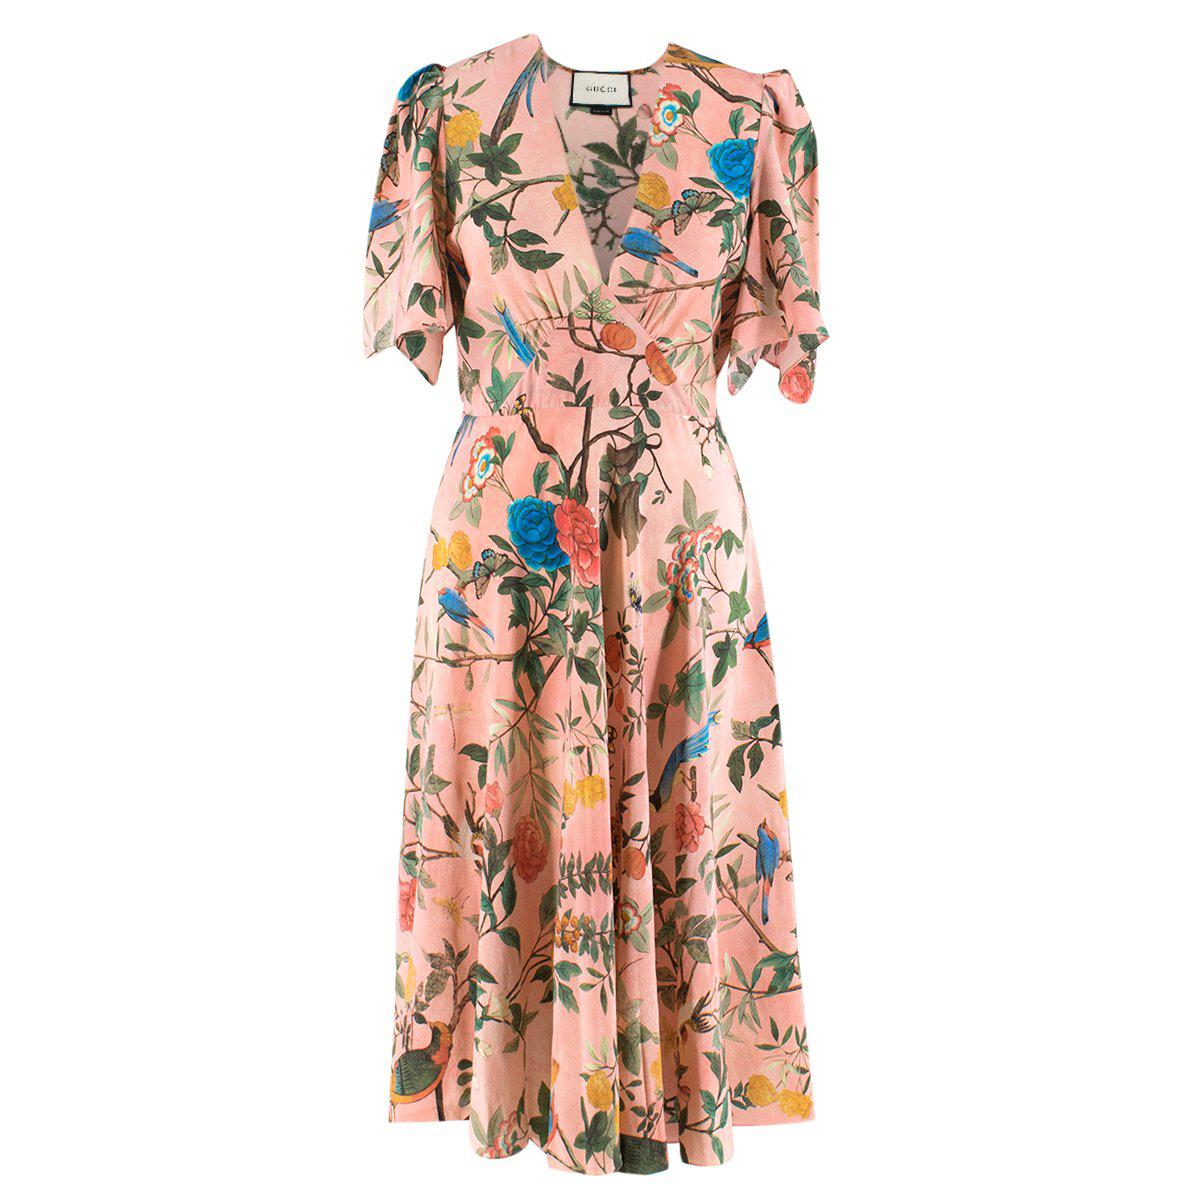 b8e712465 New Gucci Thistles and Birds Print Romantic Silk Watercolor Dress It. 40  For Sale at 1stdibs